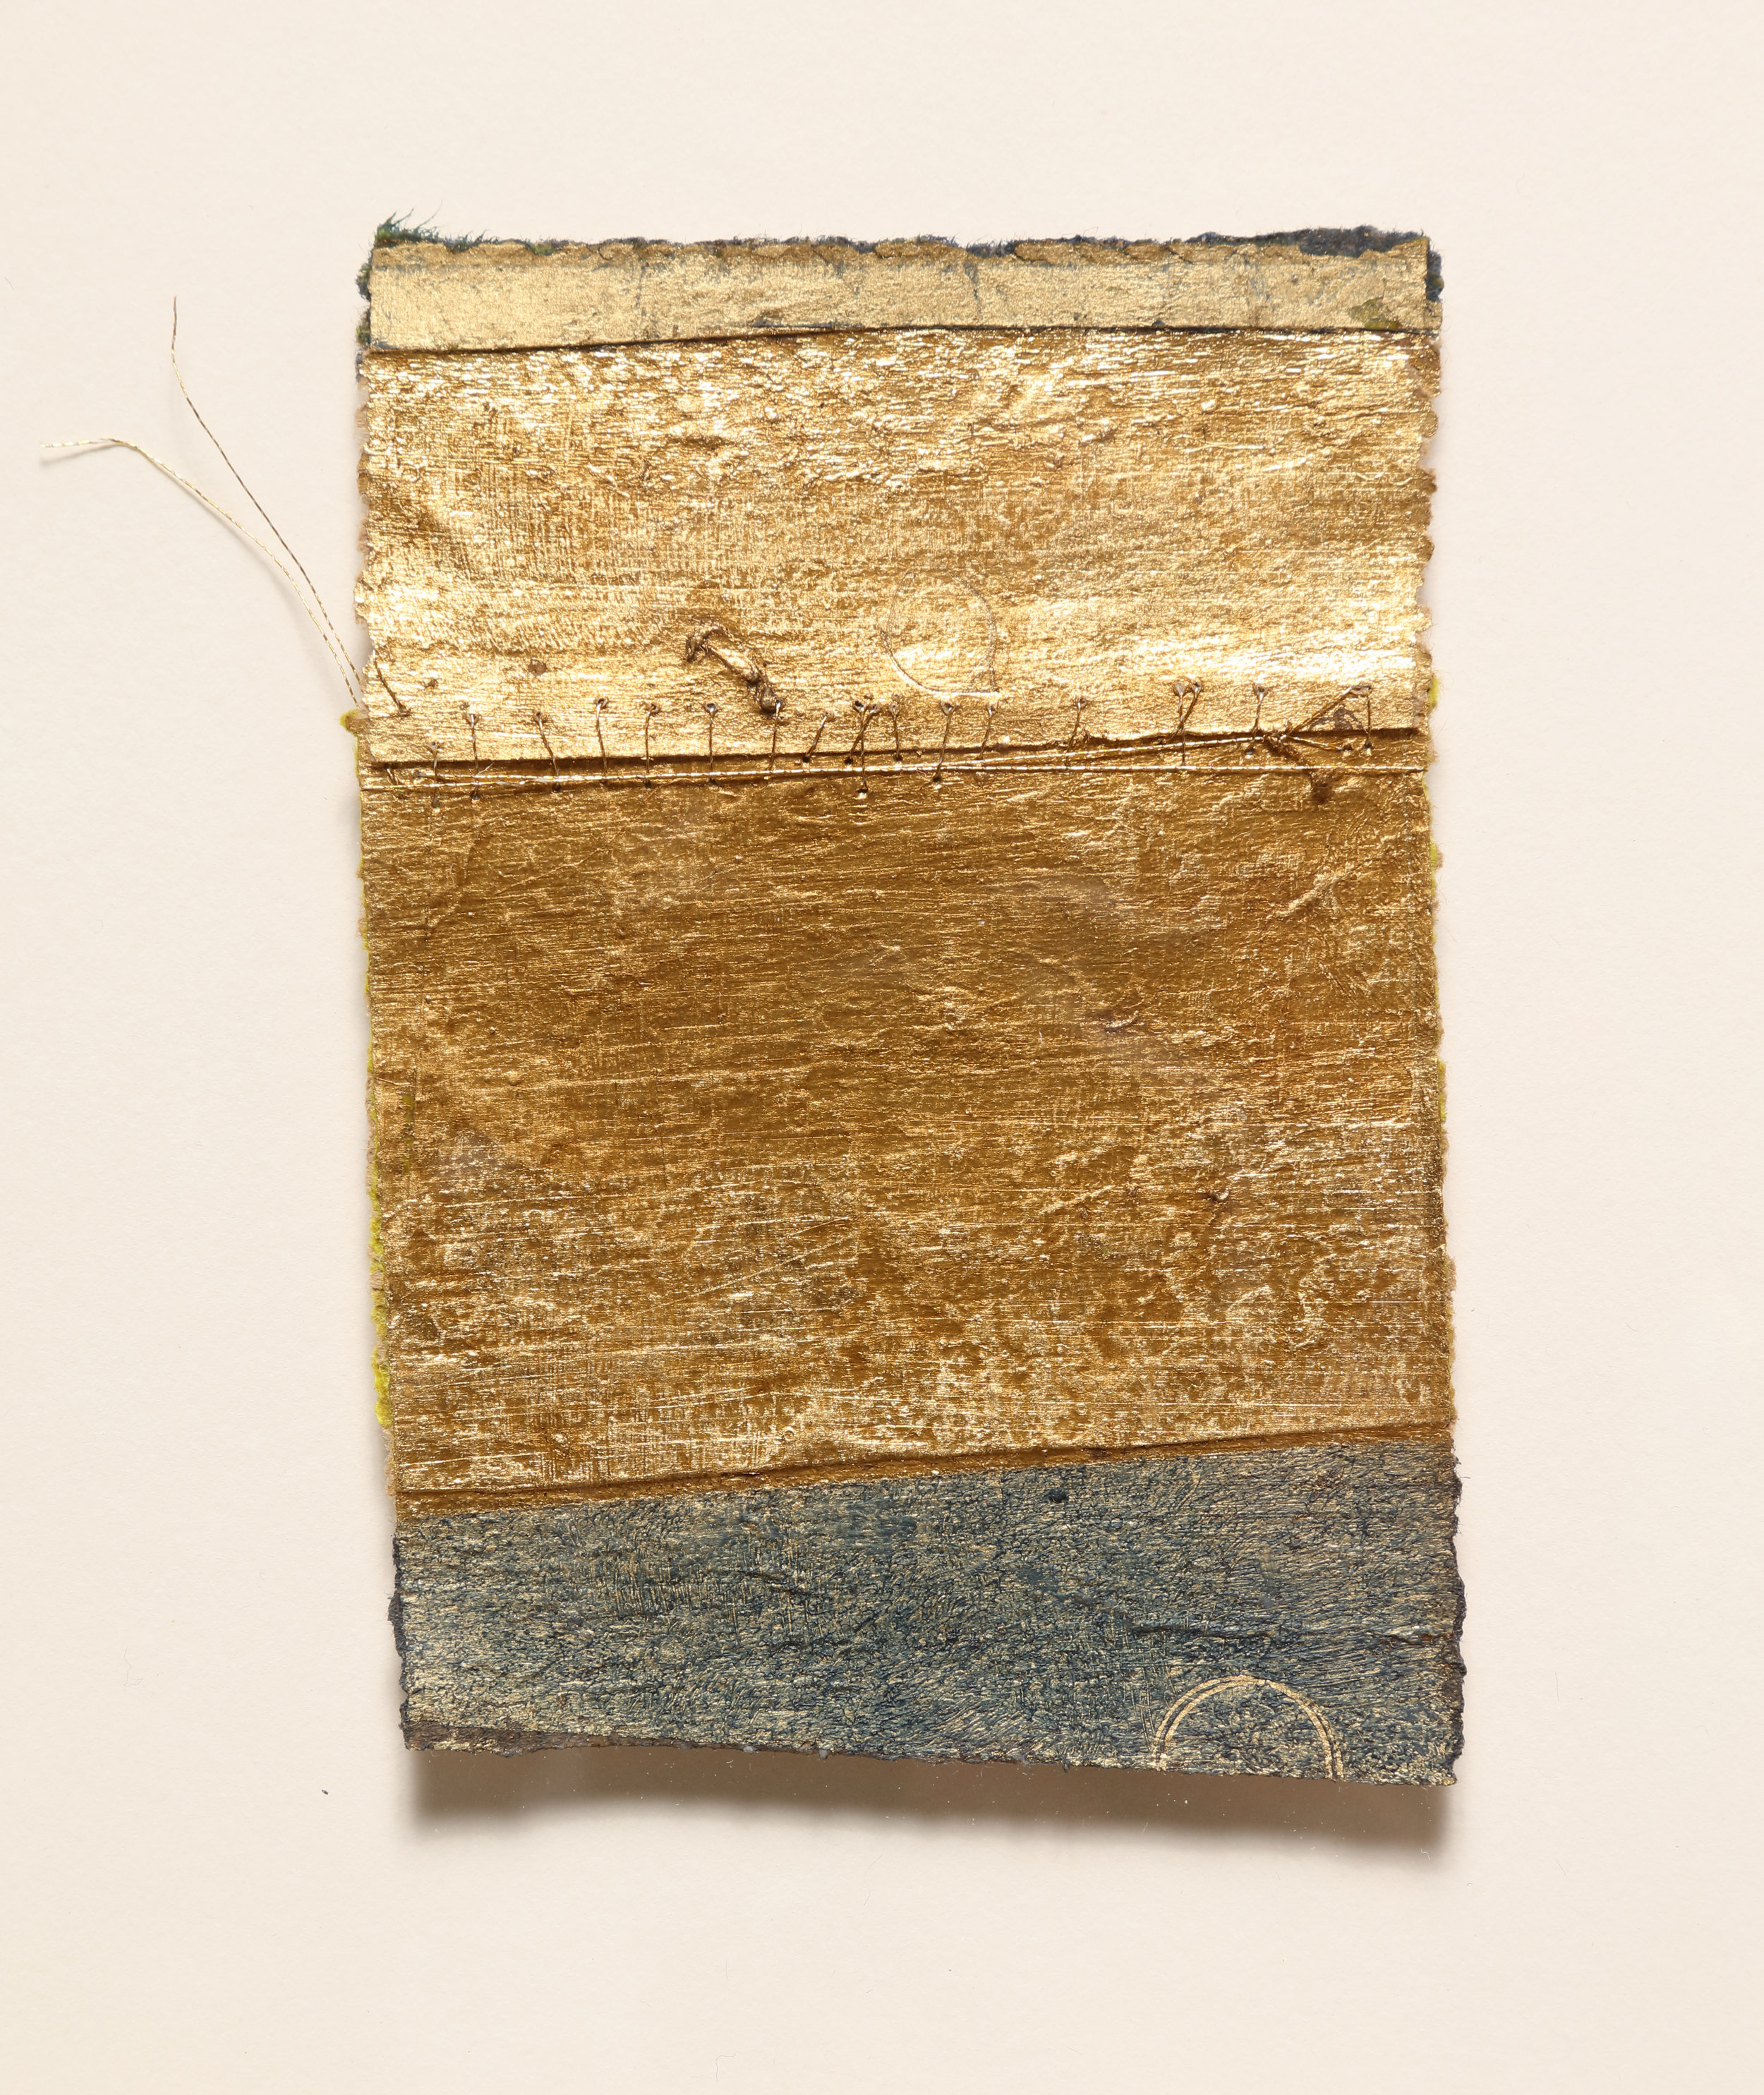 Untitled (Fragment 4),  2019  Oil, composition gold leaf, and 23K gold thread on paper  11.5H x 9W inches framed